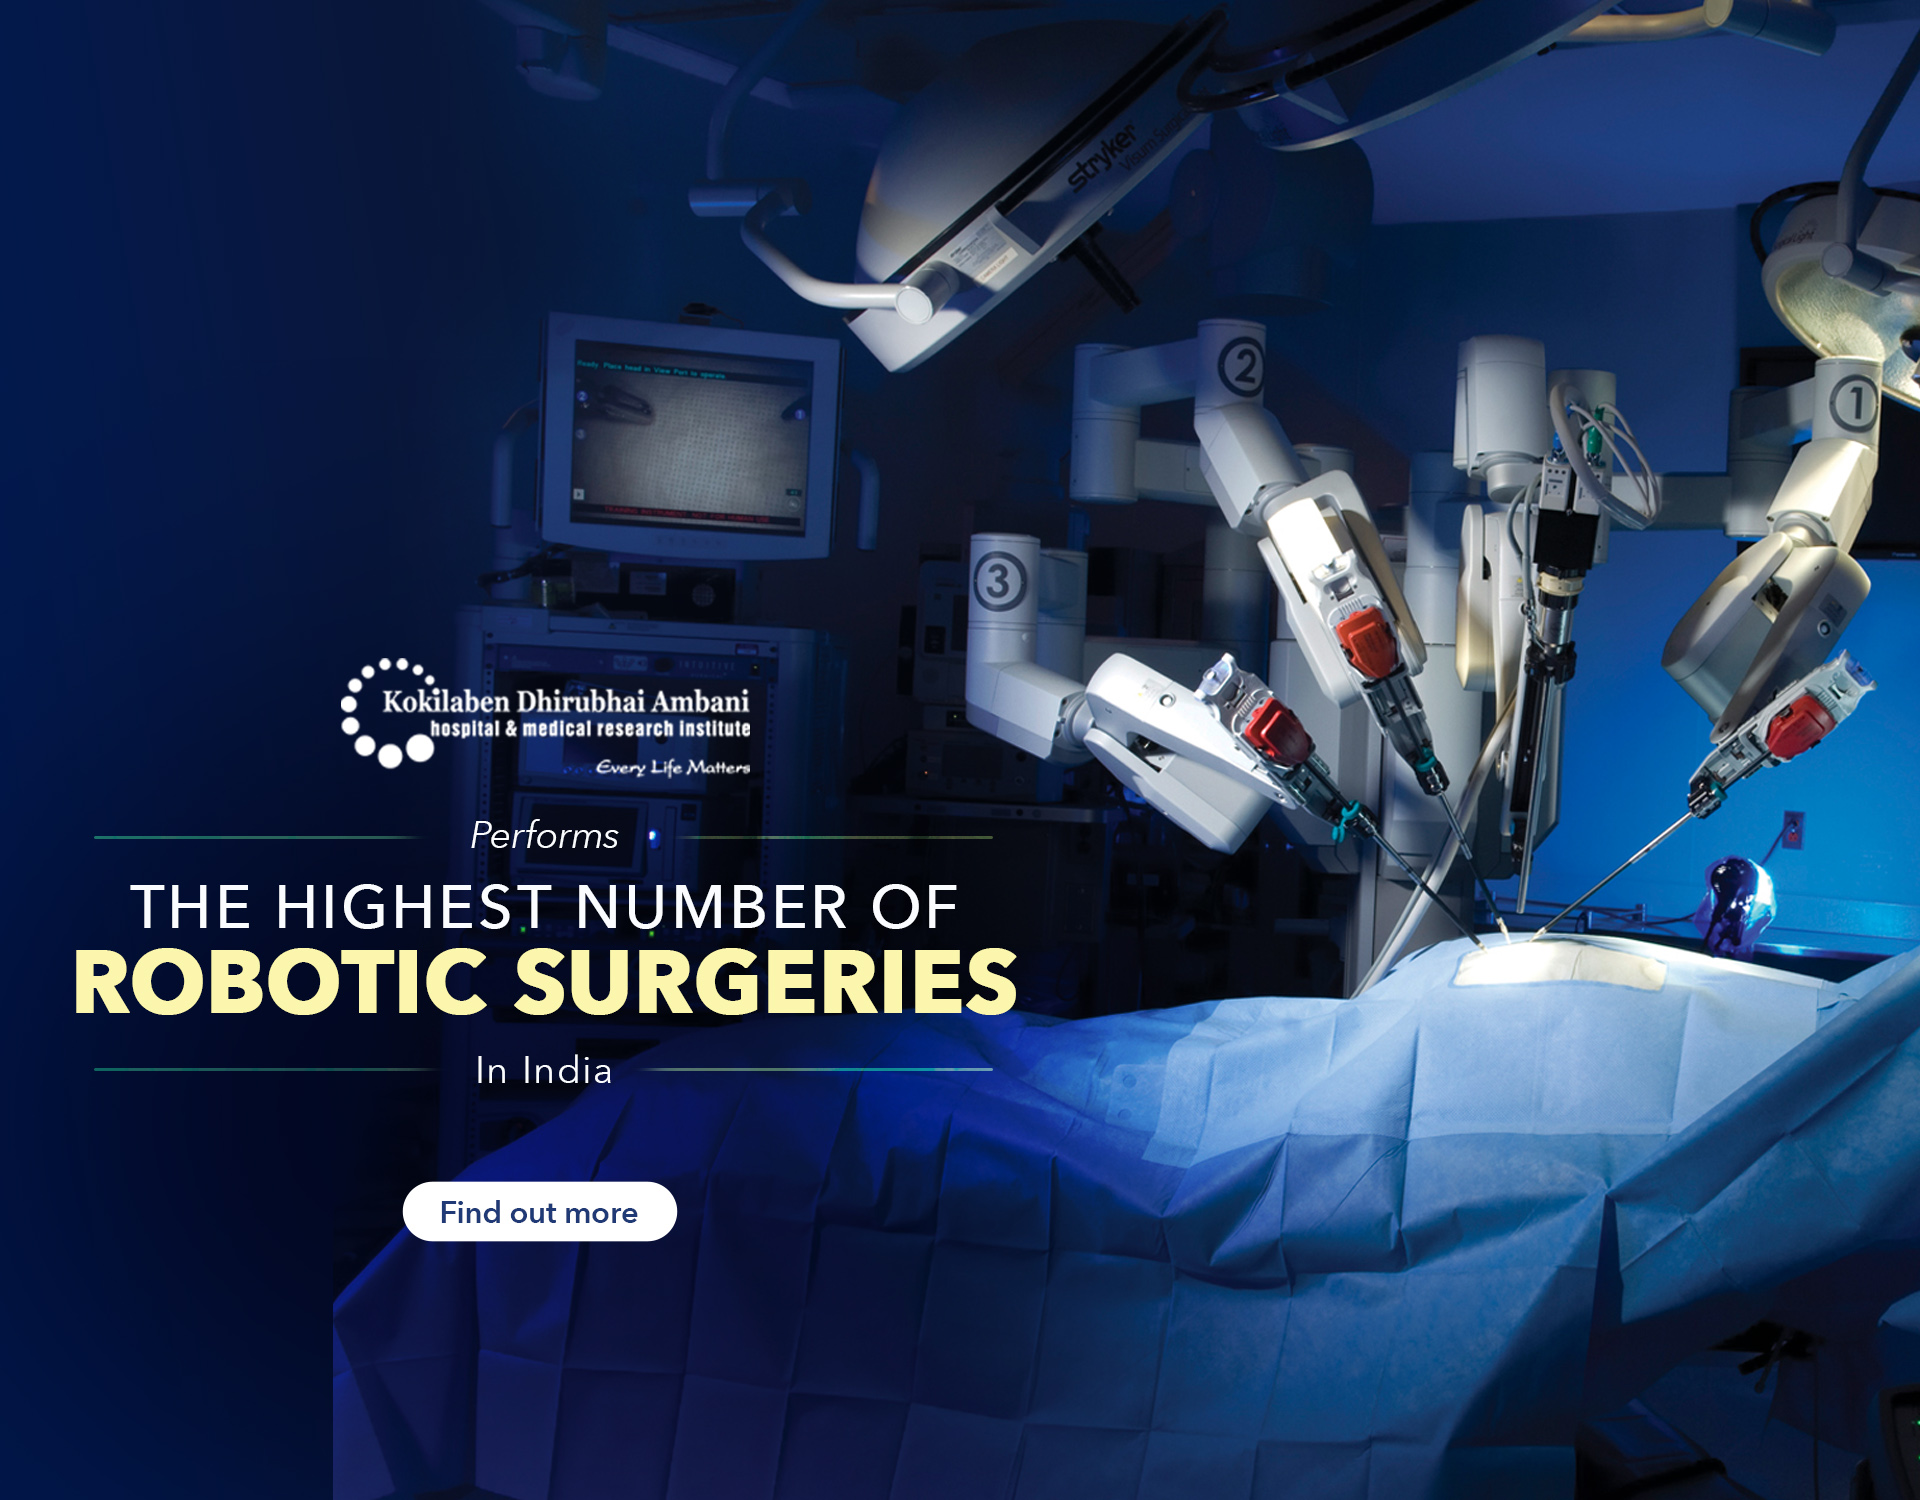 Kokilaben Dhirubhai Ambani Hospital - The Highest Number of Robotic Surgeries